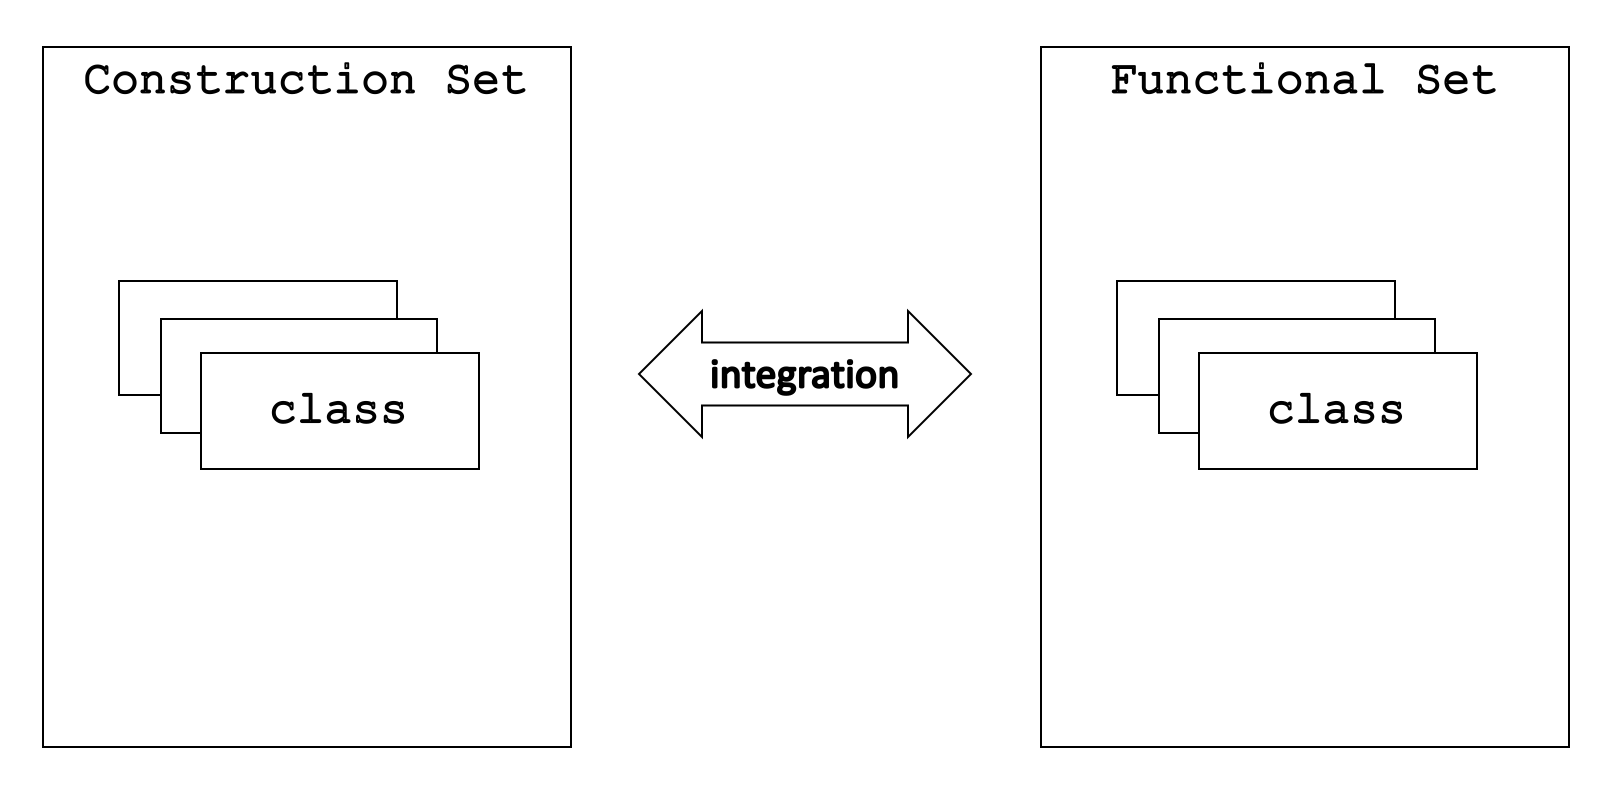 Construction and Functional Sets Integration